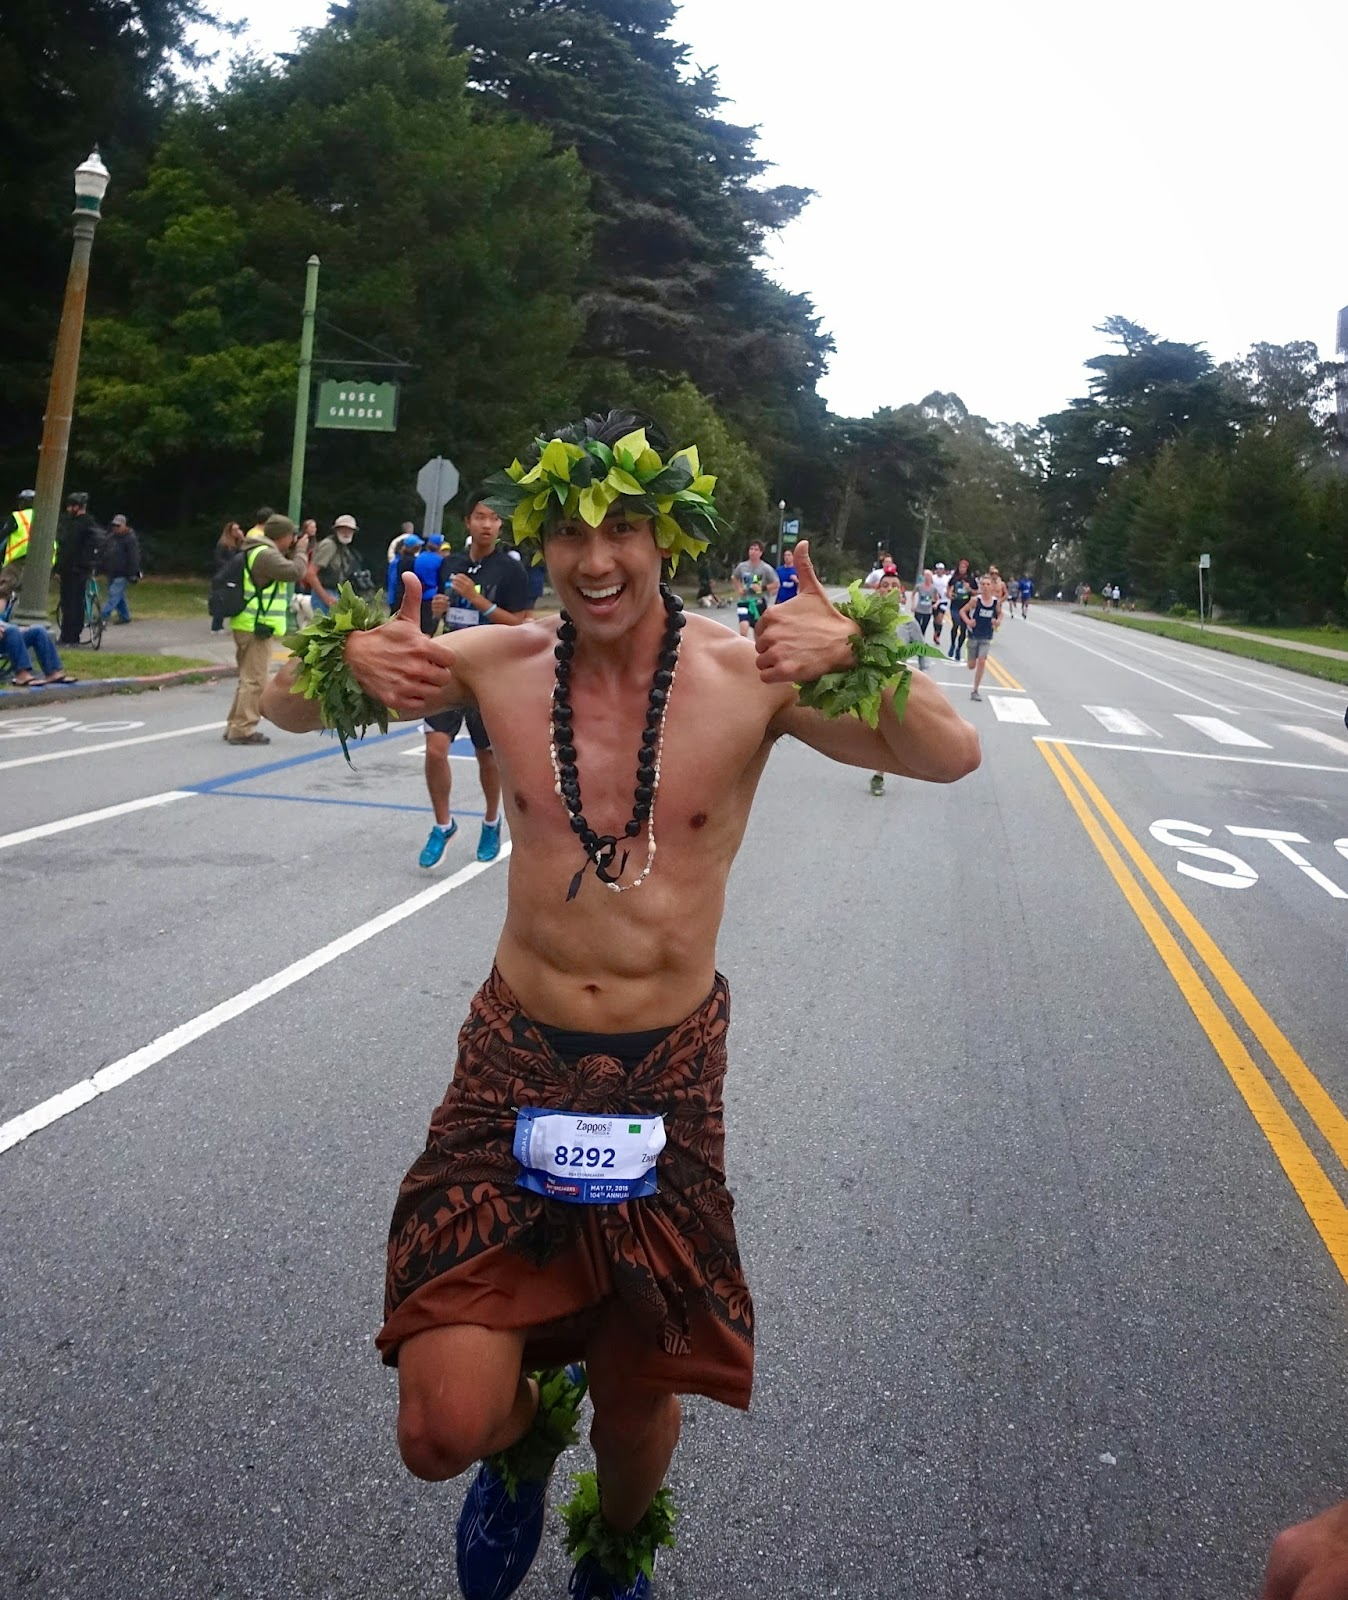 Remarkable, Bay to breakers naked women running the same